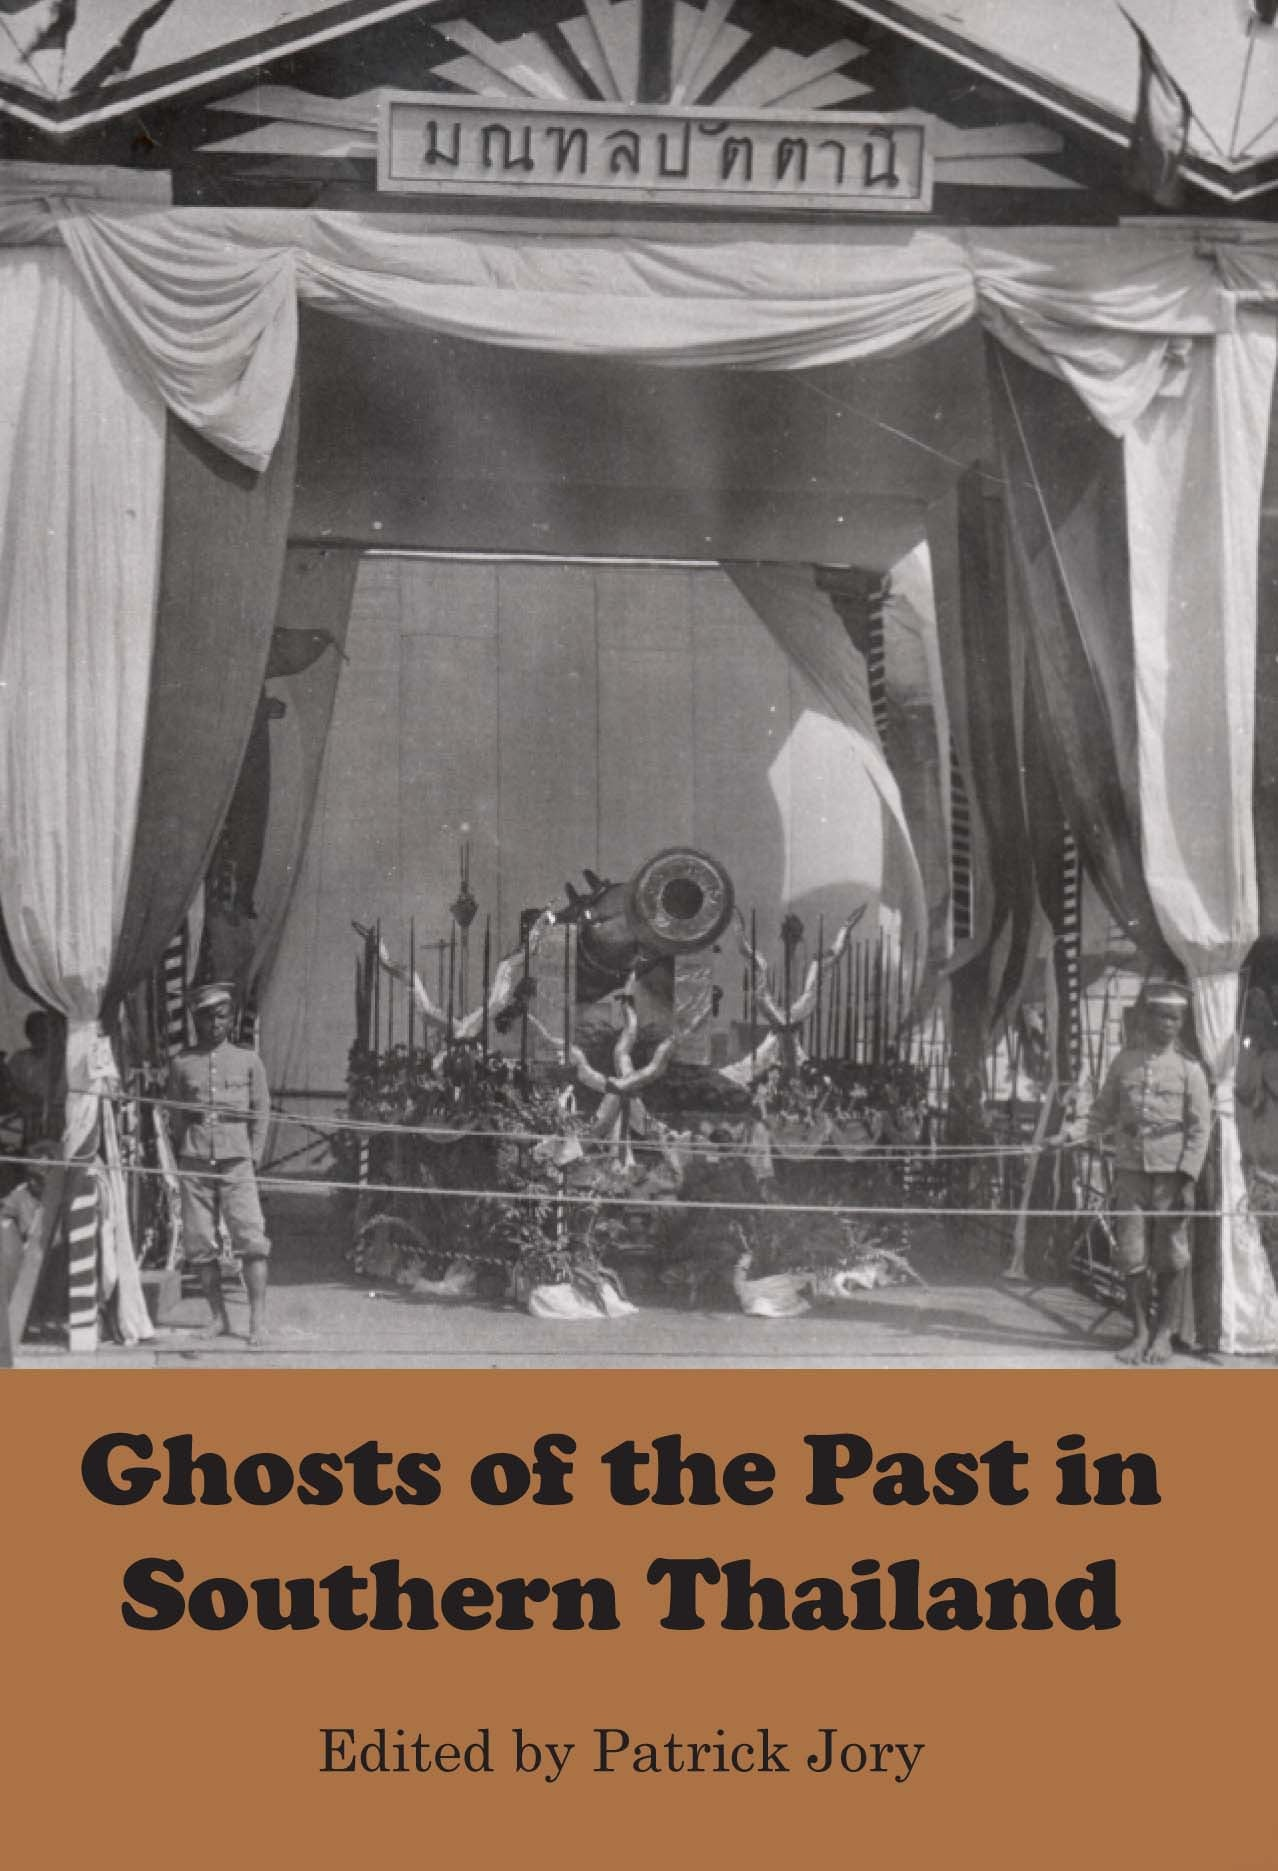 ghosts of the past in southern thailand essays on the history and ghosts of the past in southern thailand